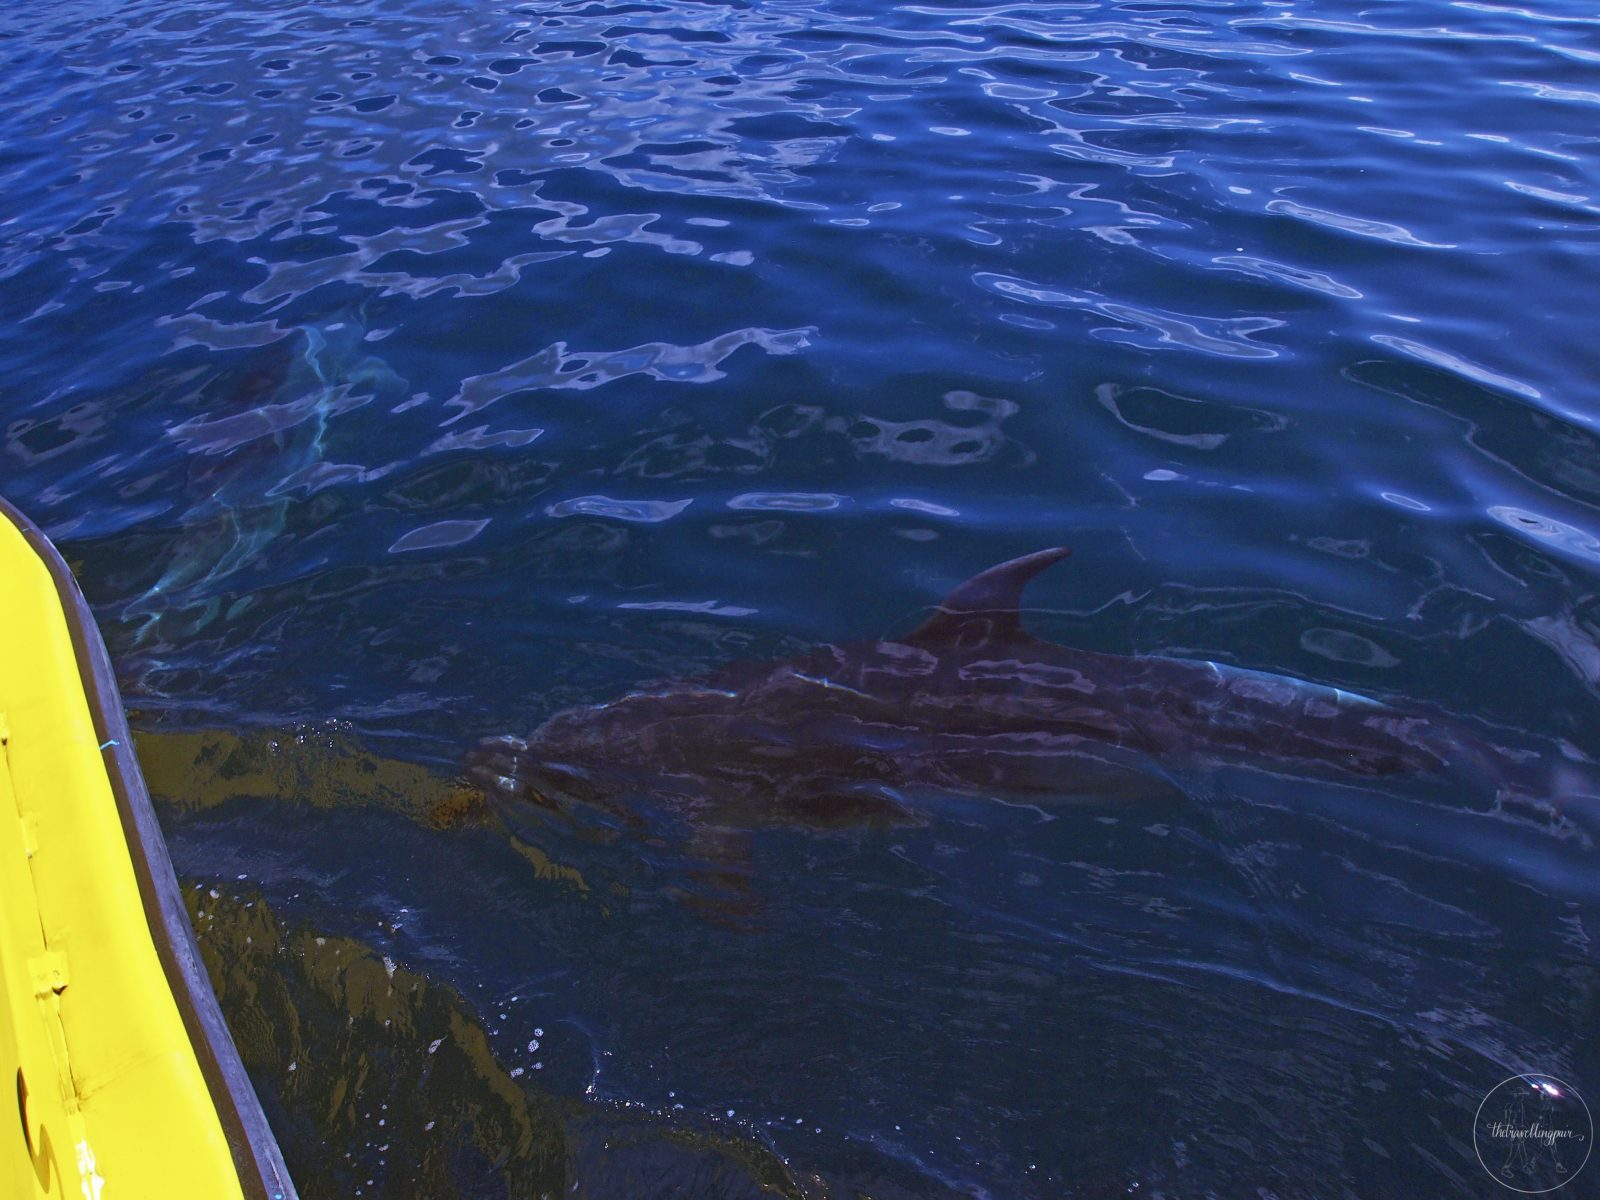 Dolphin at the Bay of Islands